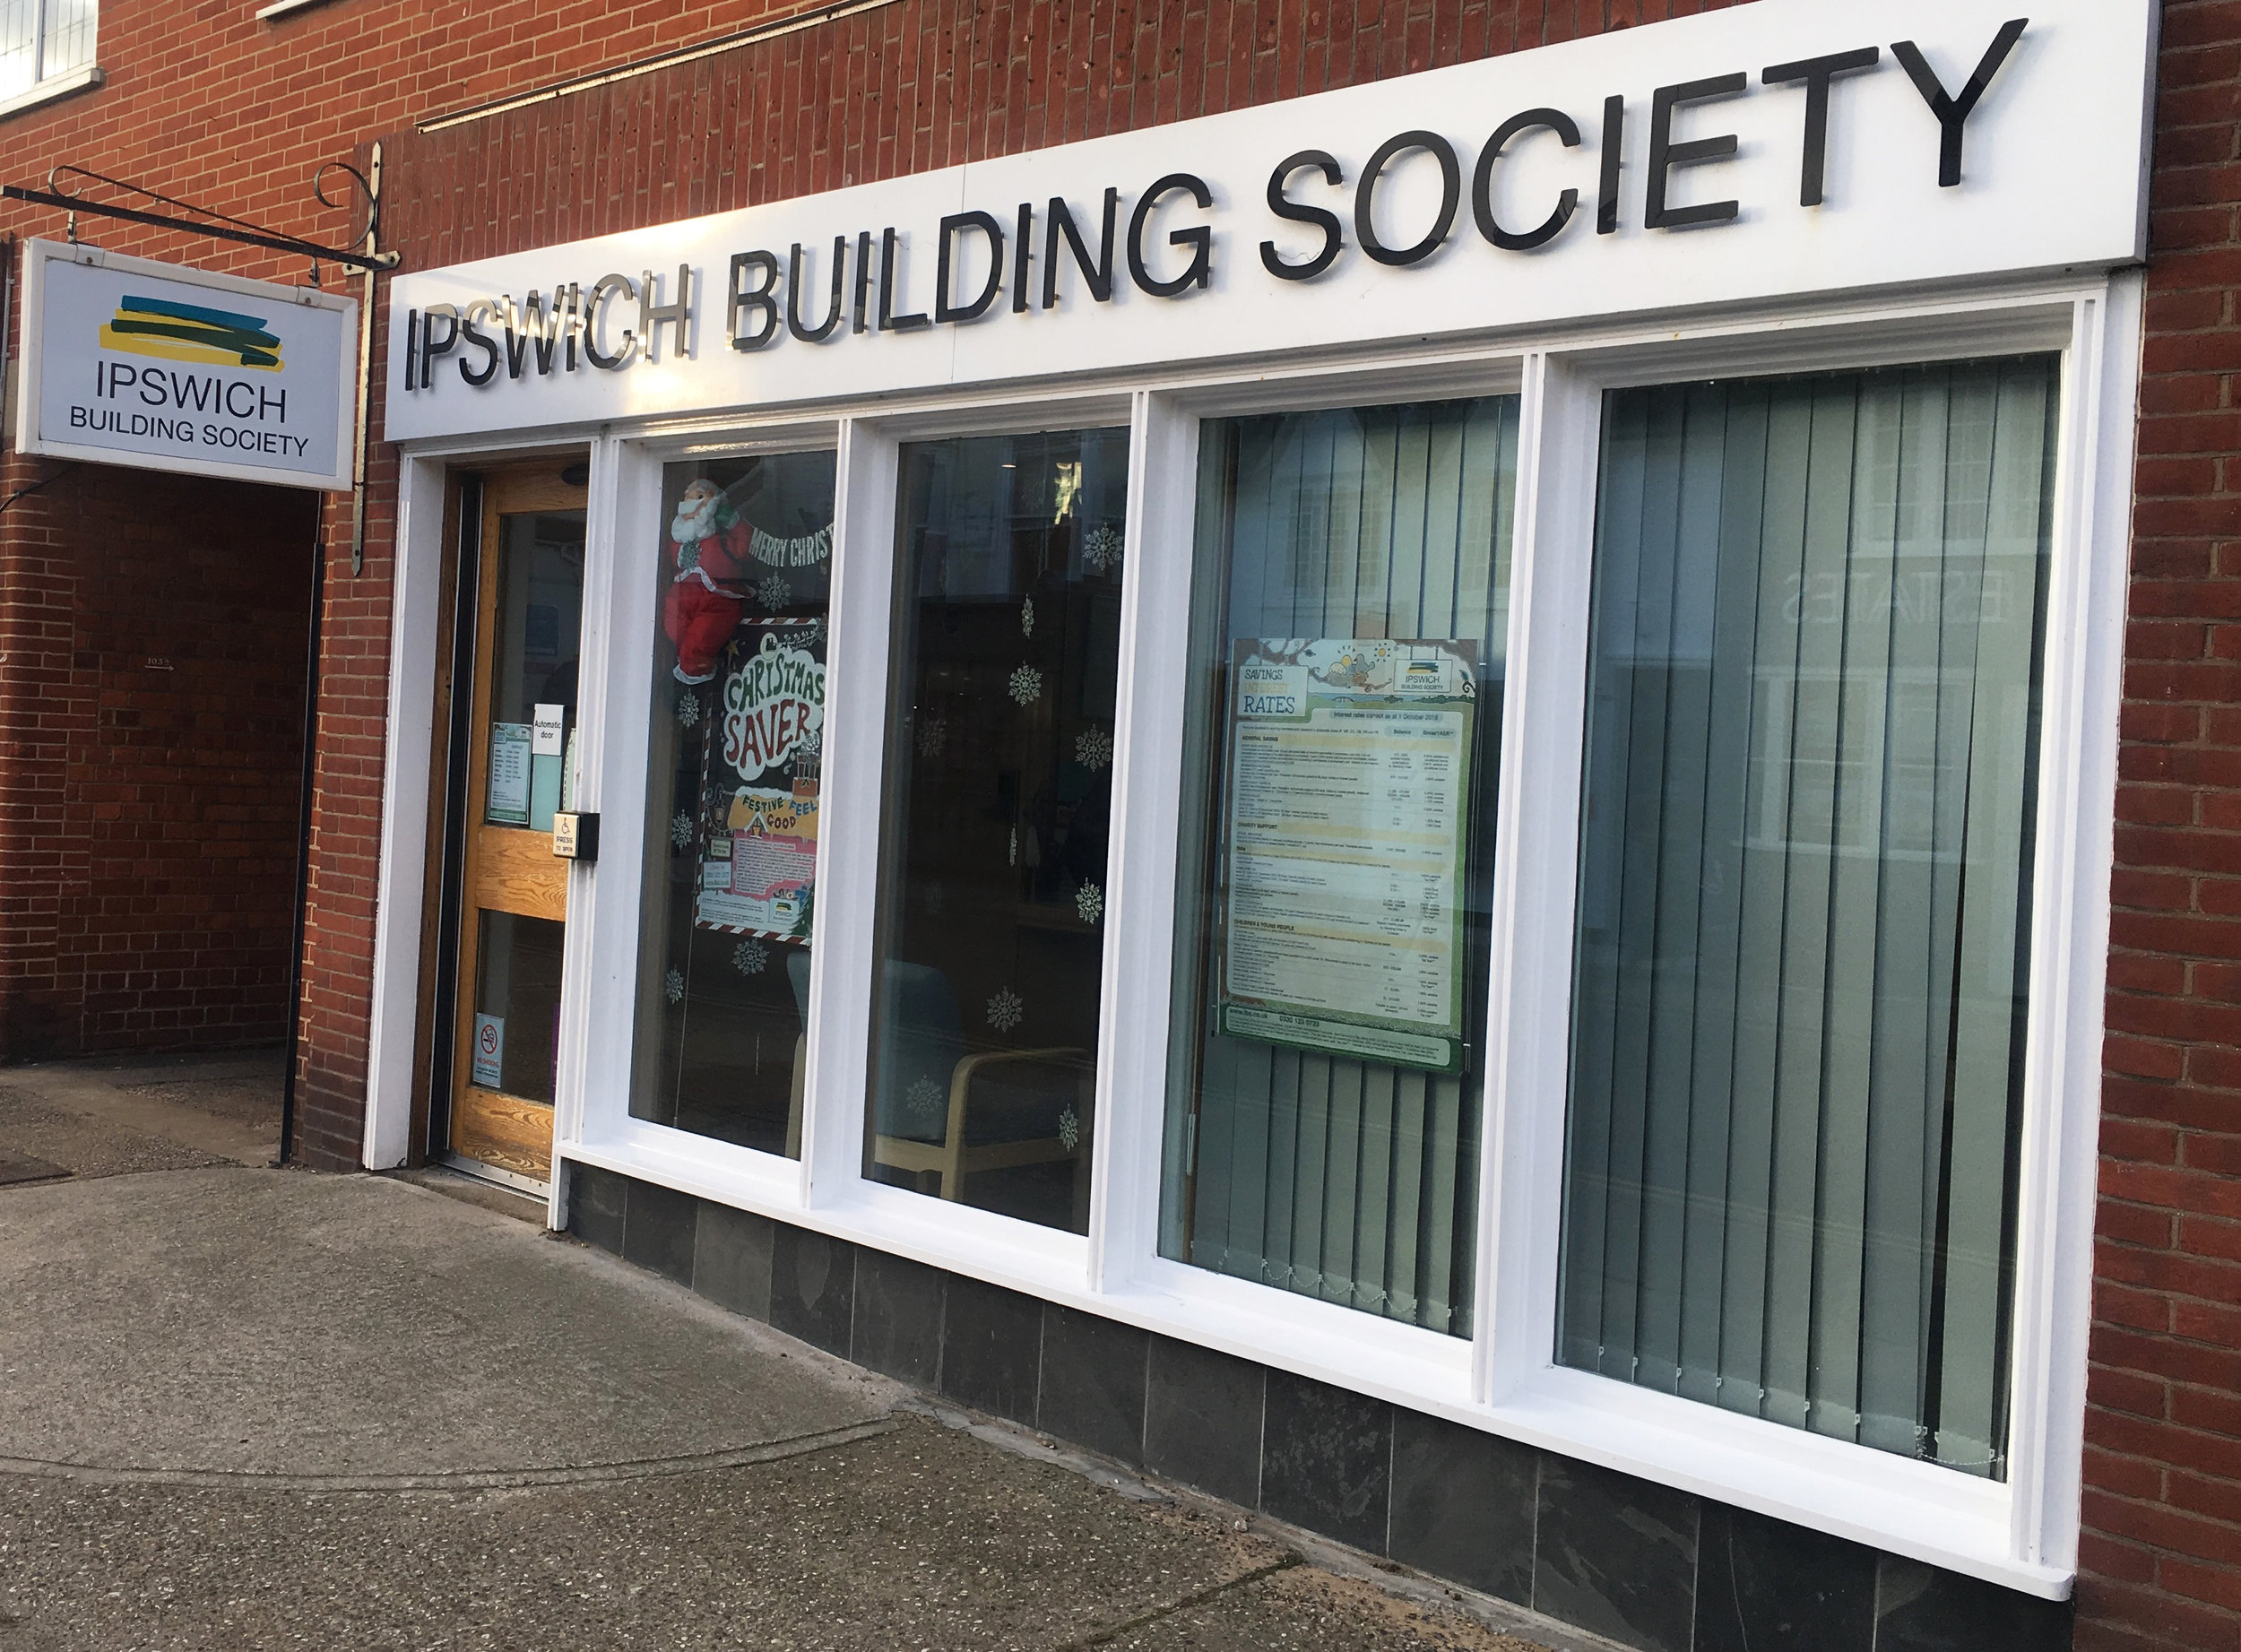 Ipswich Building Society, High Street, Aldeburgh - photo credit Kesha Allen.jpg